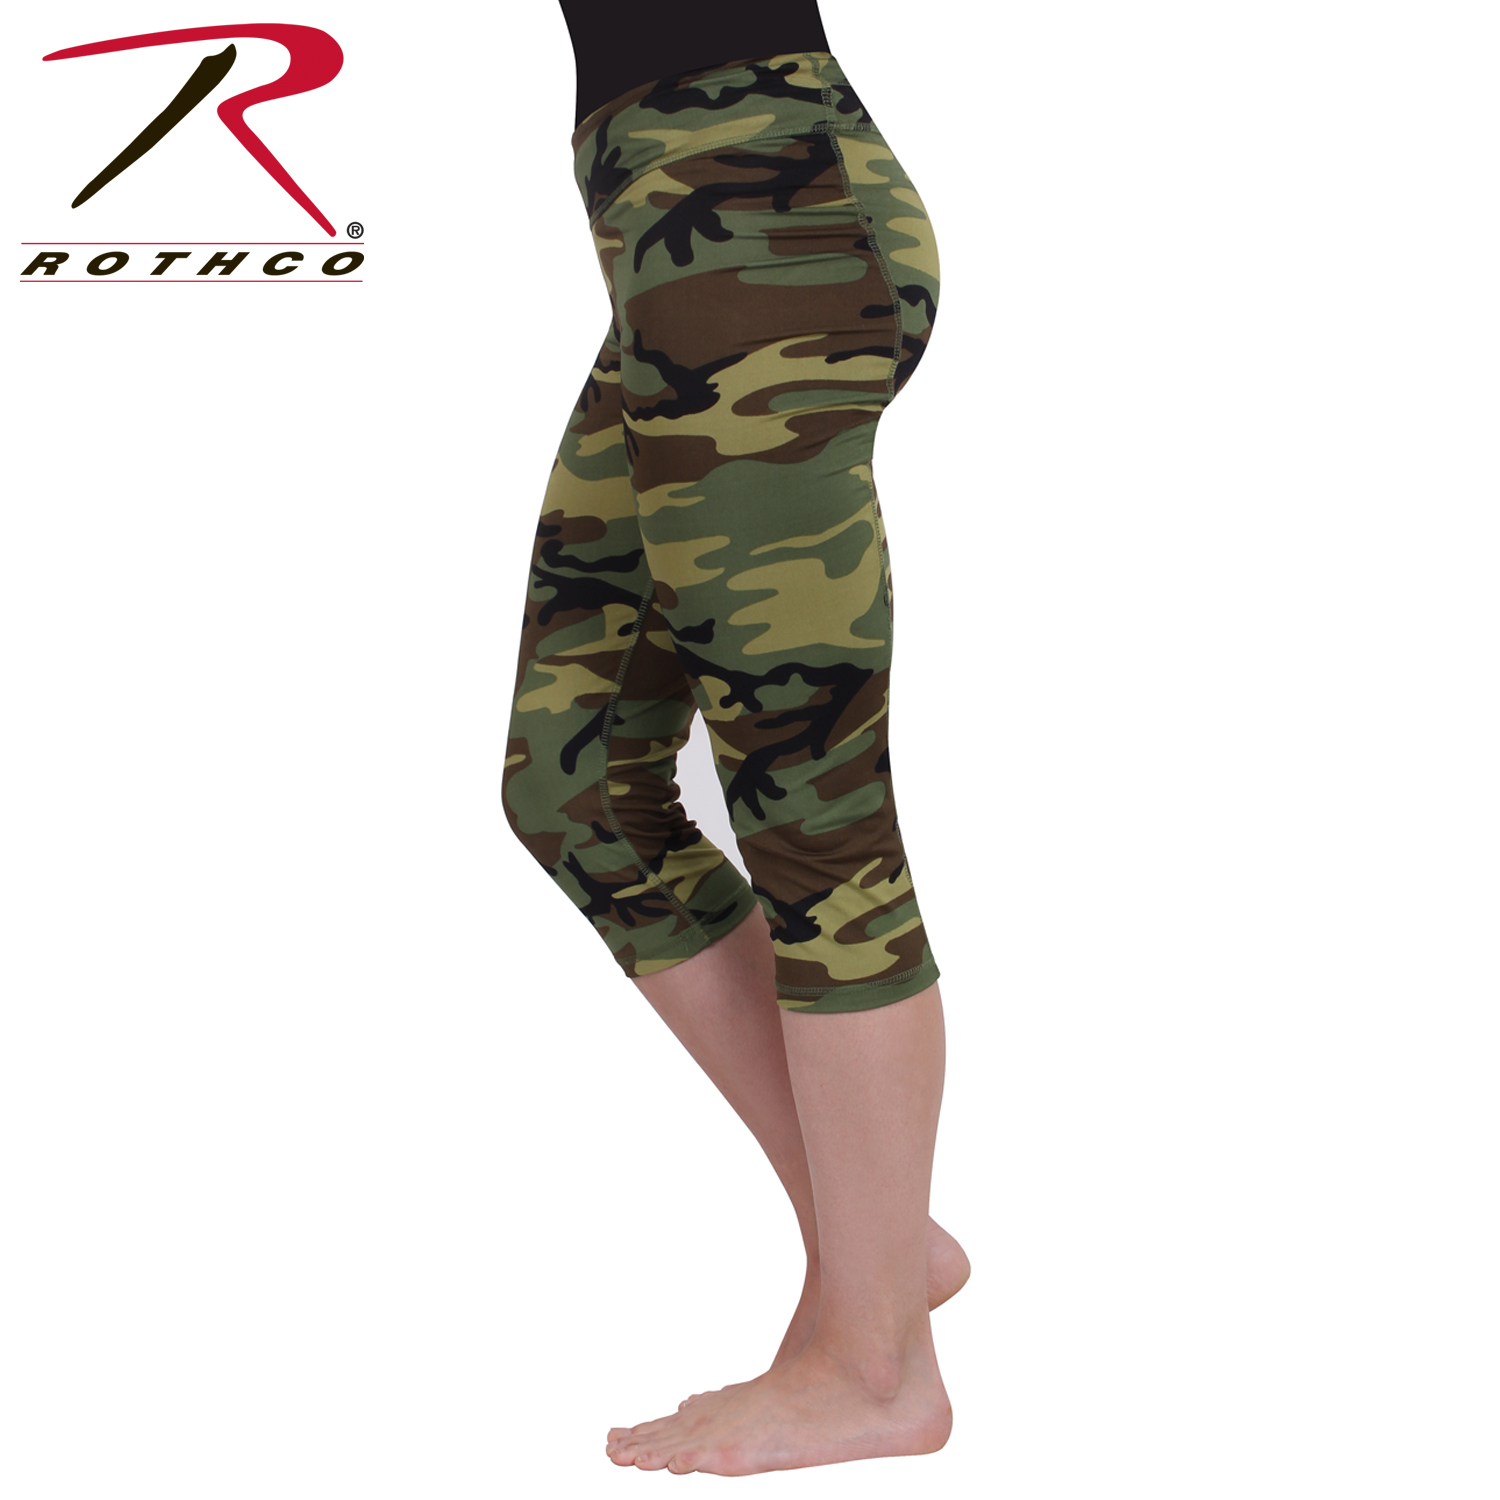 04bf3a24d97d42 ... camouflage clothes womens, womens camouflage clothing,. Loading zoom